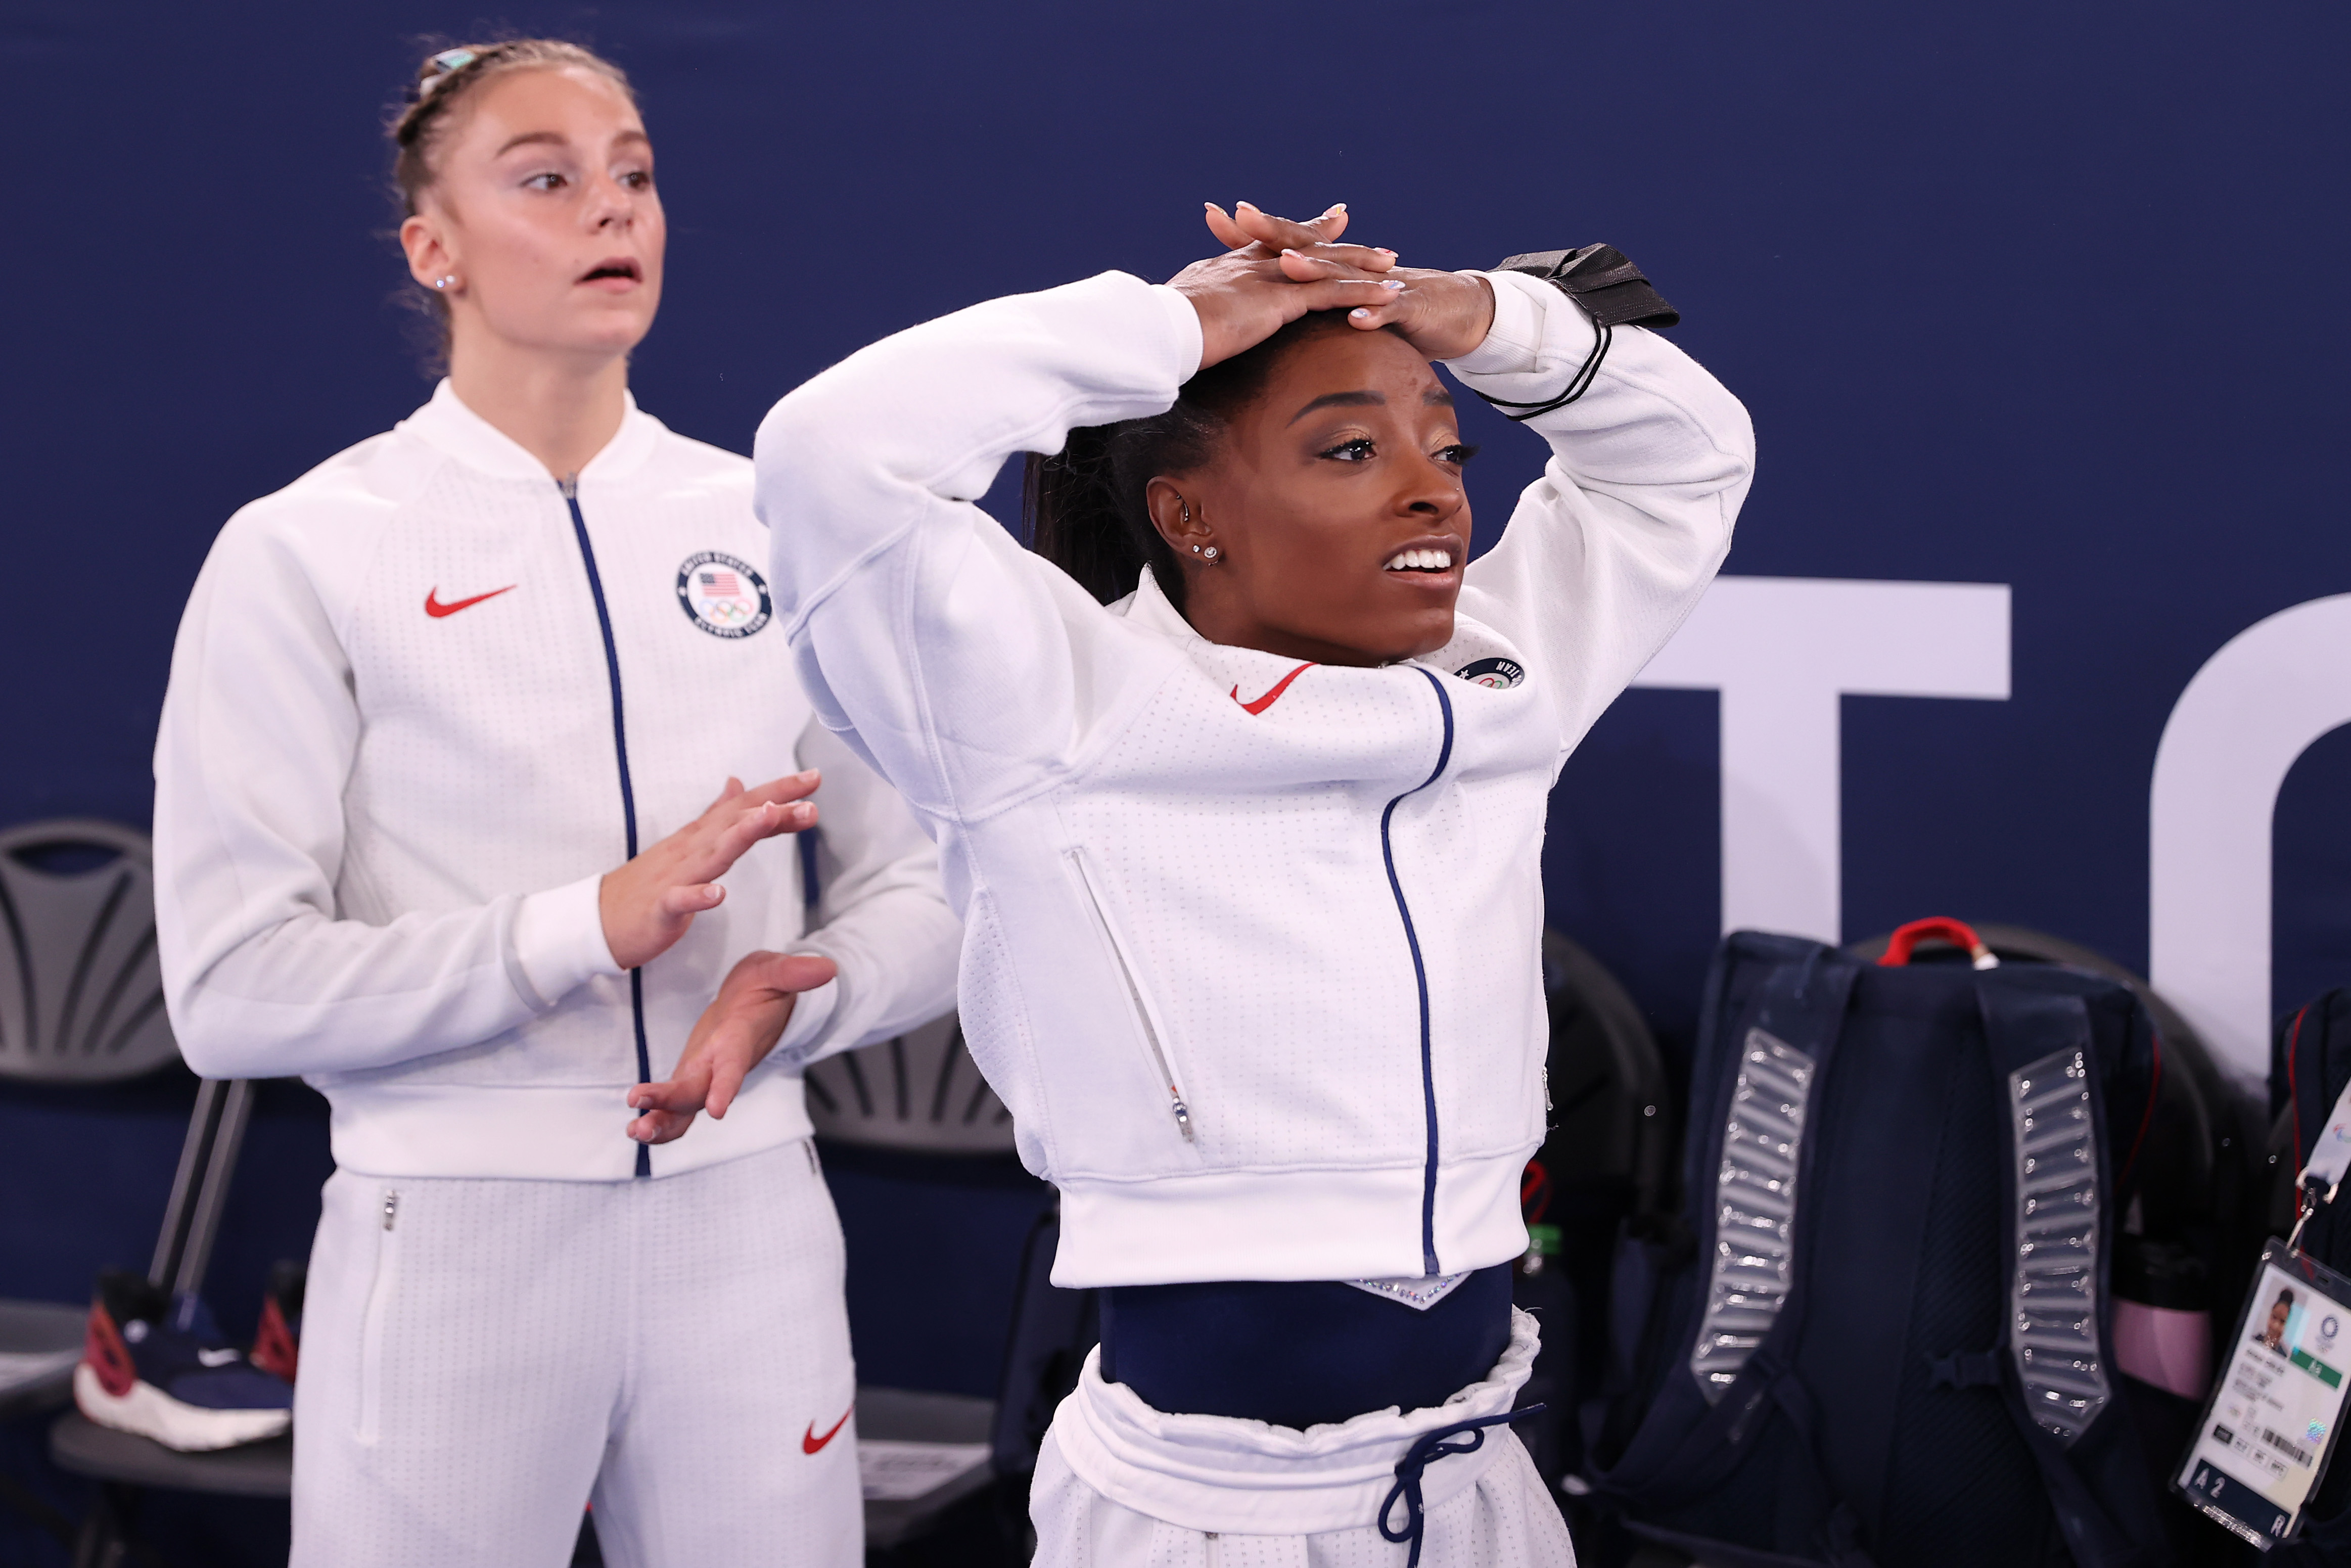 Simone Biles of Team United States reacts during the Women's Team Final on day four of the Tokyo 2020 Olympic Games at Ariake Gymnastics Centre on July 27, 2021 in Tokyo, Japan.